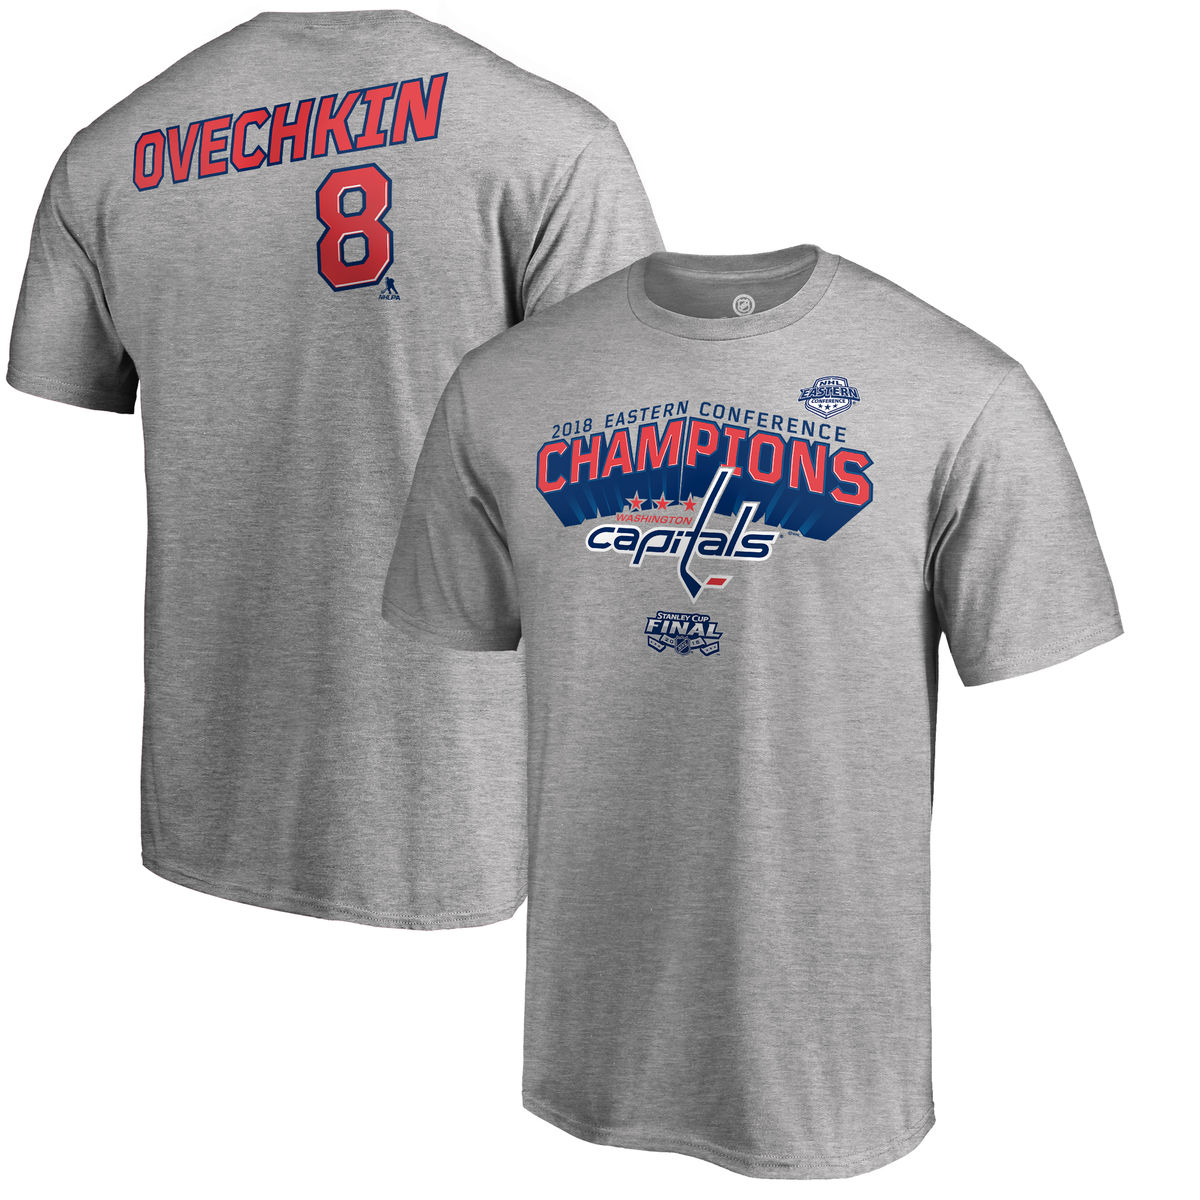 901ed43a3f5be The NHL s store on Fanatics is now selling Conference Champions shirts and  hats. Here are a few of the designs.